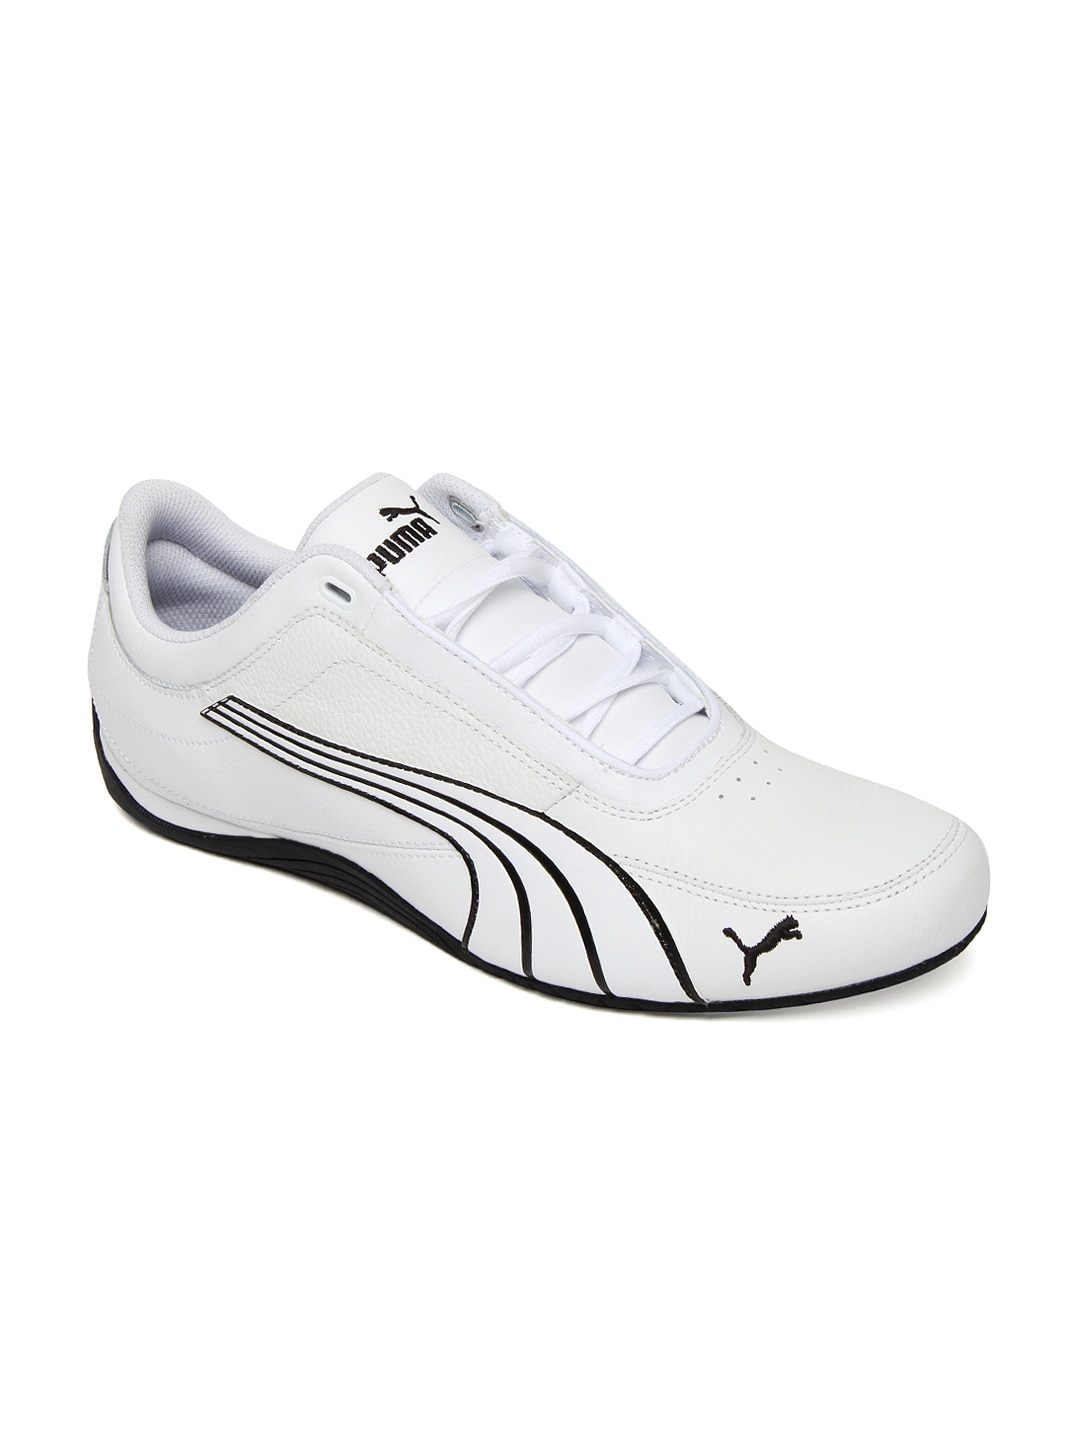 dd83ca941e5 Puma 30402608 Men White Drift Cat 4 Sports Shoes - Best Price in ...